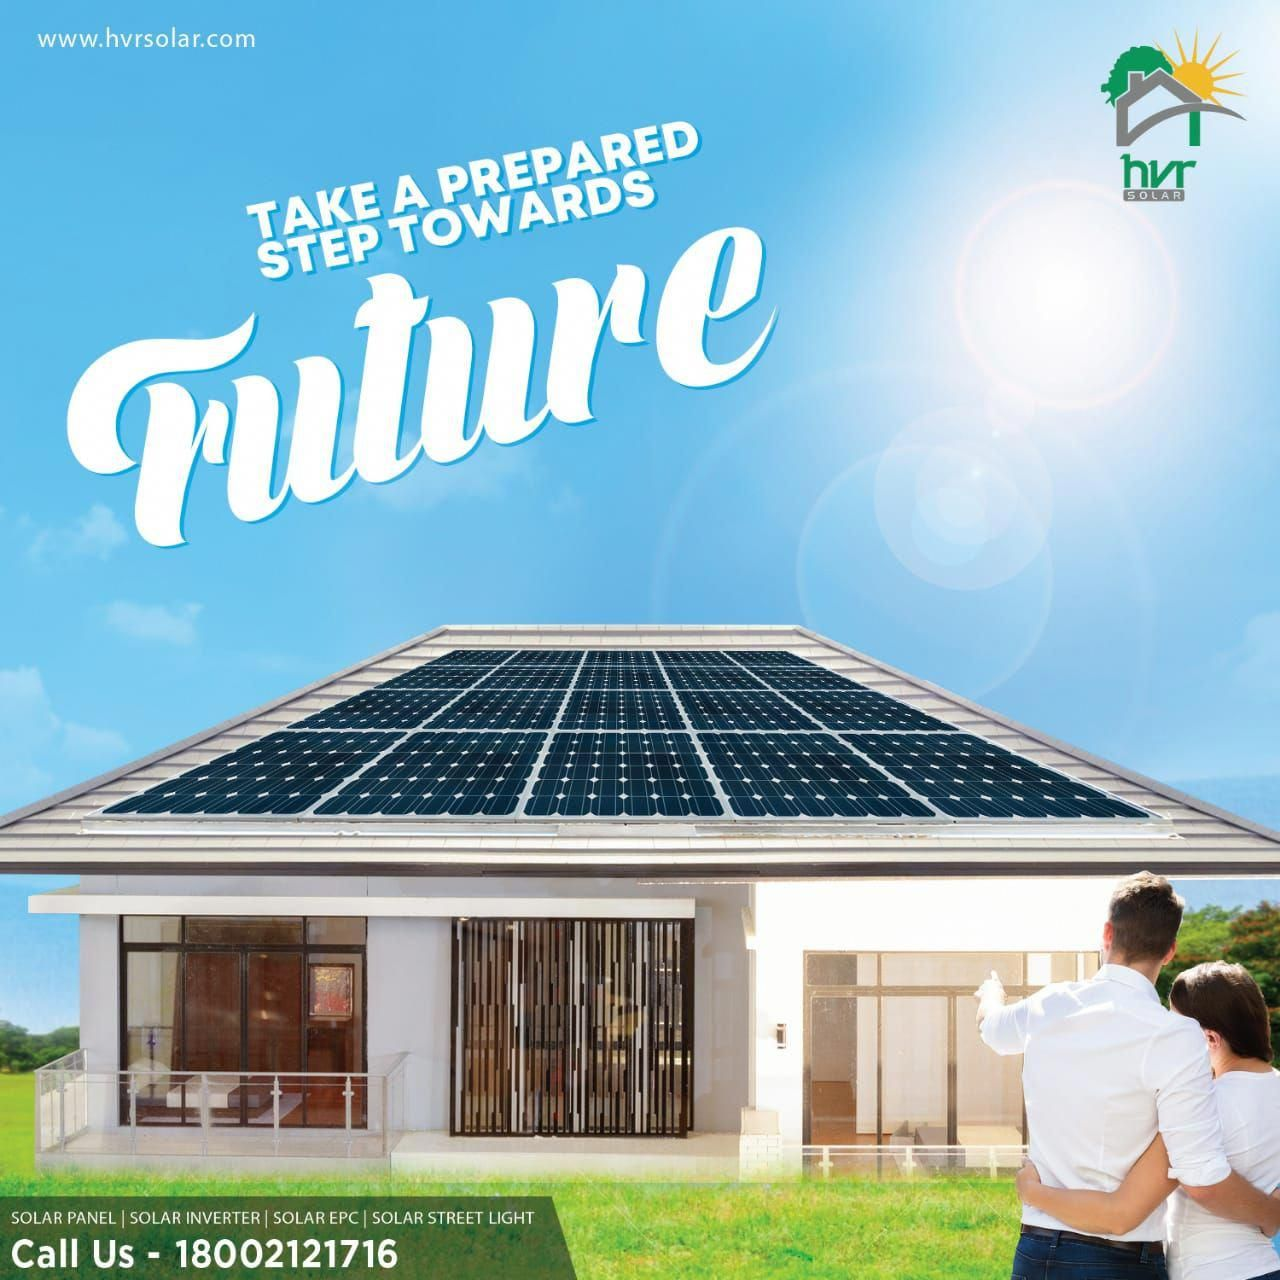 Developing Future With Solar Solutions Is The Best Way To Conserve The Environment Be Smart Go Solar Gosolar Elec In 2020 Solar Solar Panels Solar Solutions